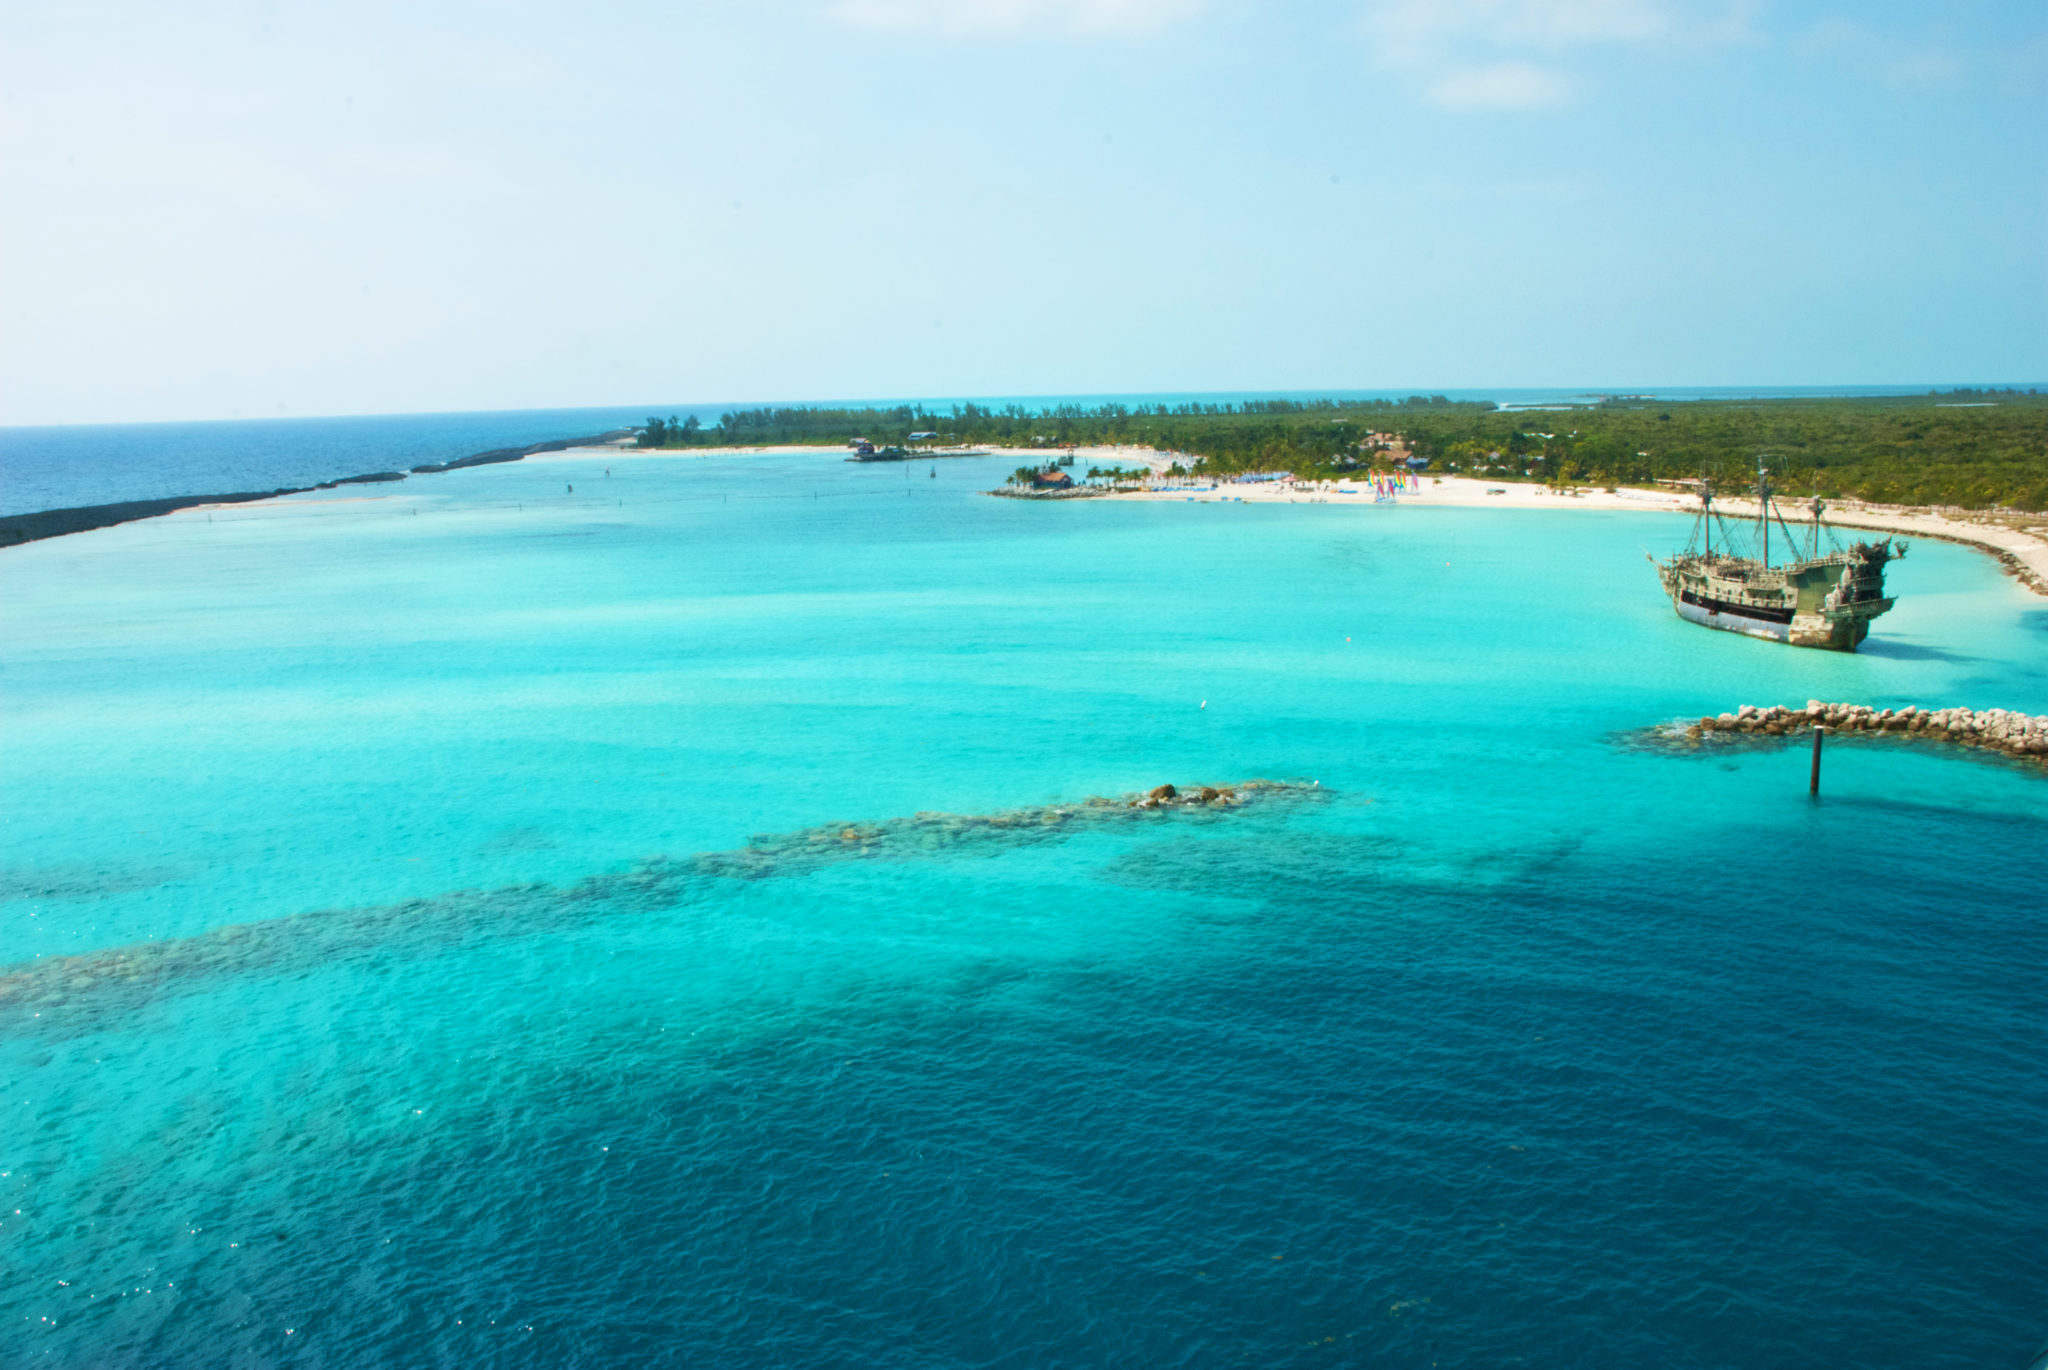 Cruise to the Bahamas for Family Fun & Adventure